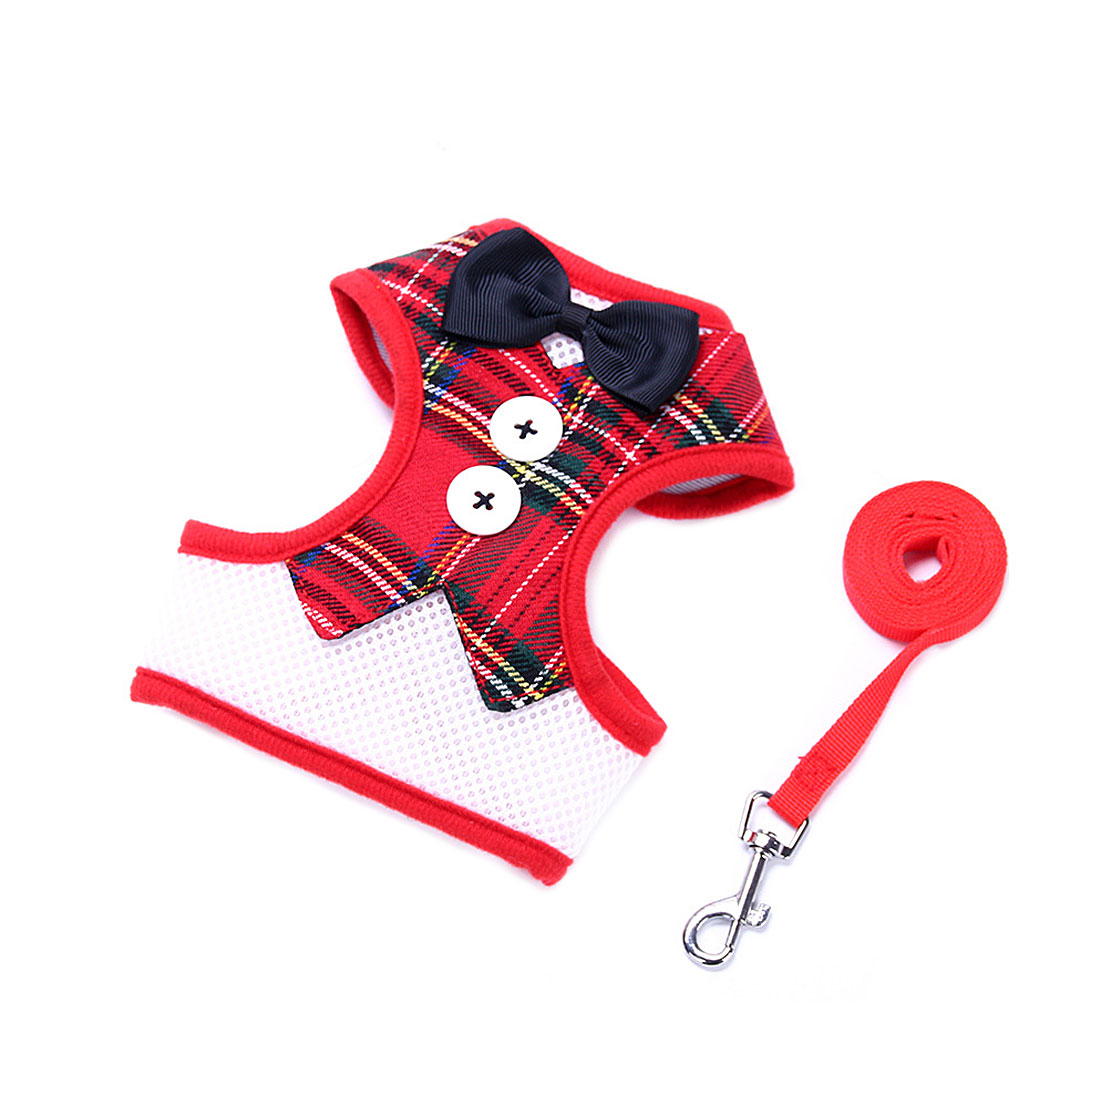 Adjustable Padded Small Dog Harness Breathable Dog Vest Bowtie Gentleman Suit Red Grid M